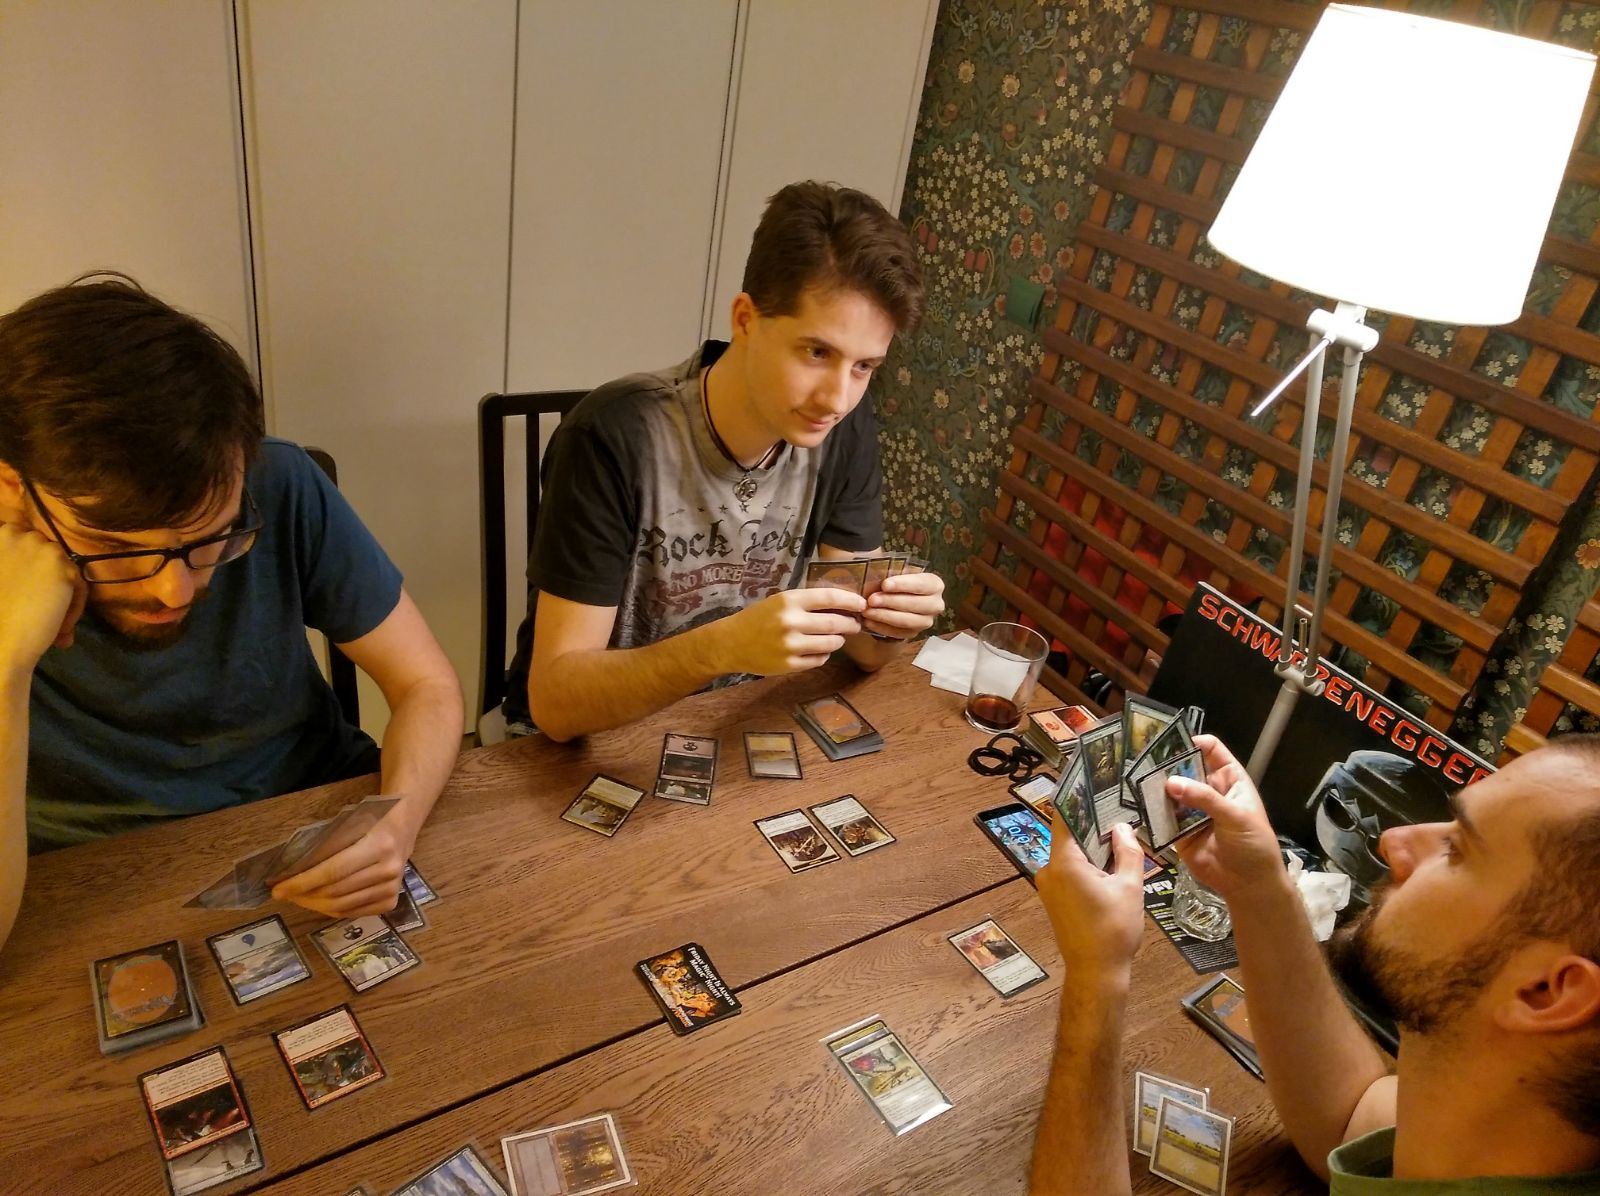 File:Players during a Magic The Gathering Draft.jpg - Wikimedia Commons